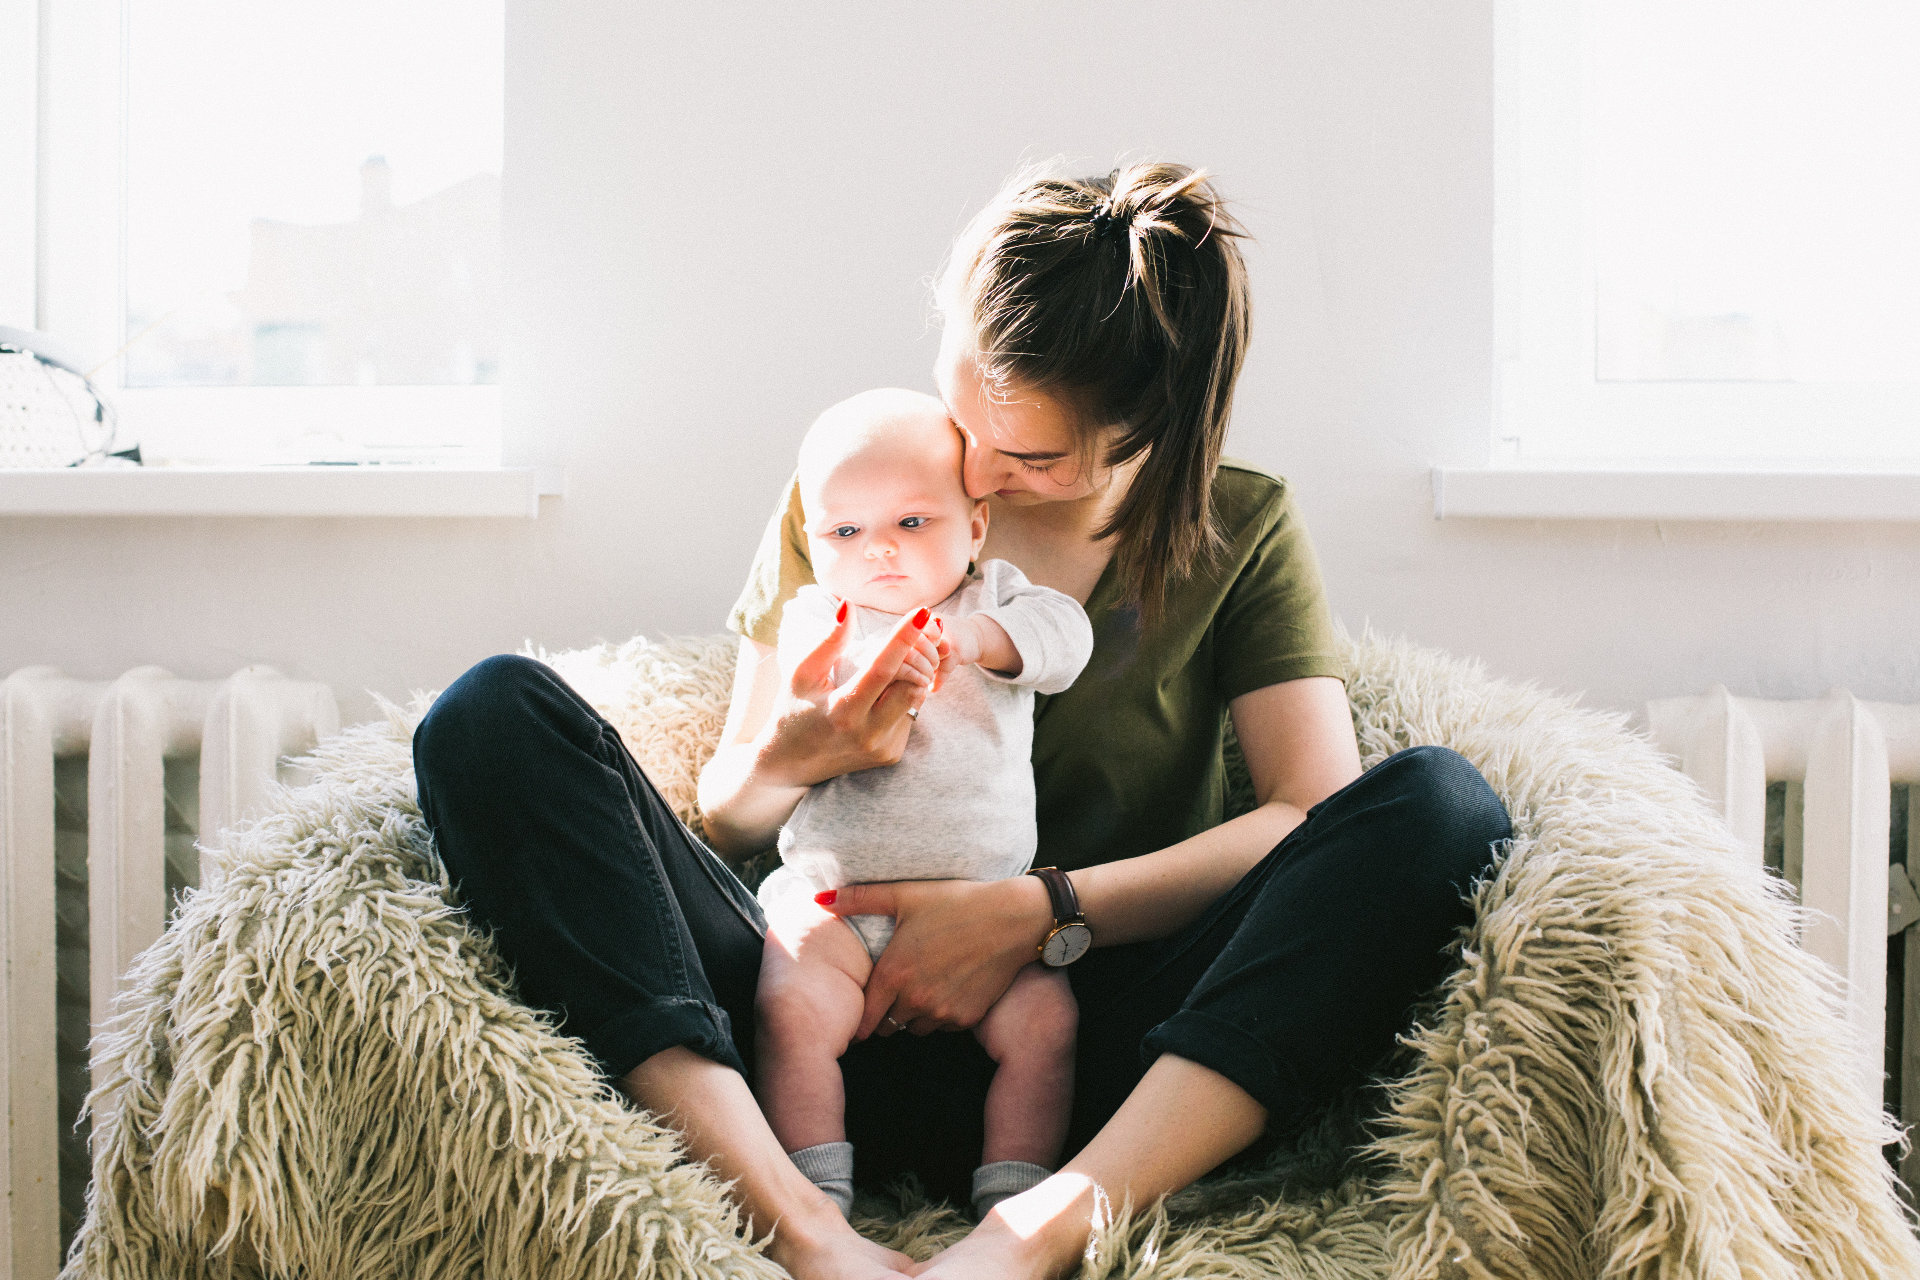 woman-holding-baby-while-sitting-on-fur-bean-bag-698878